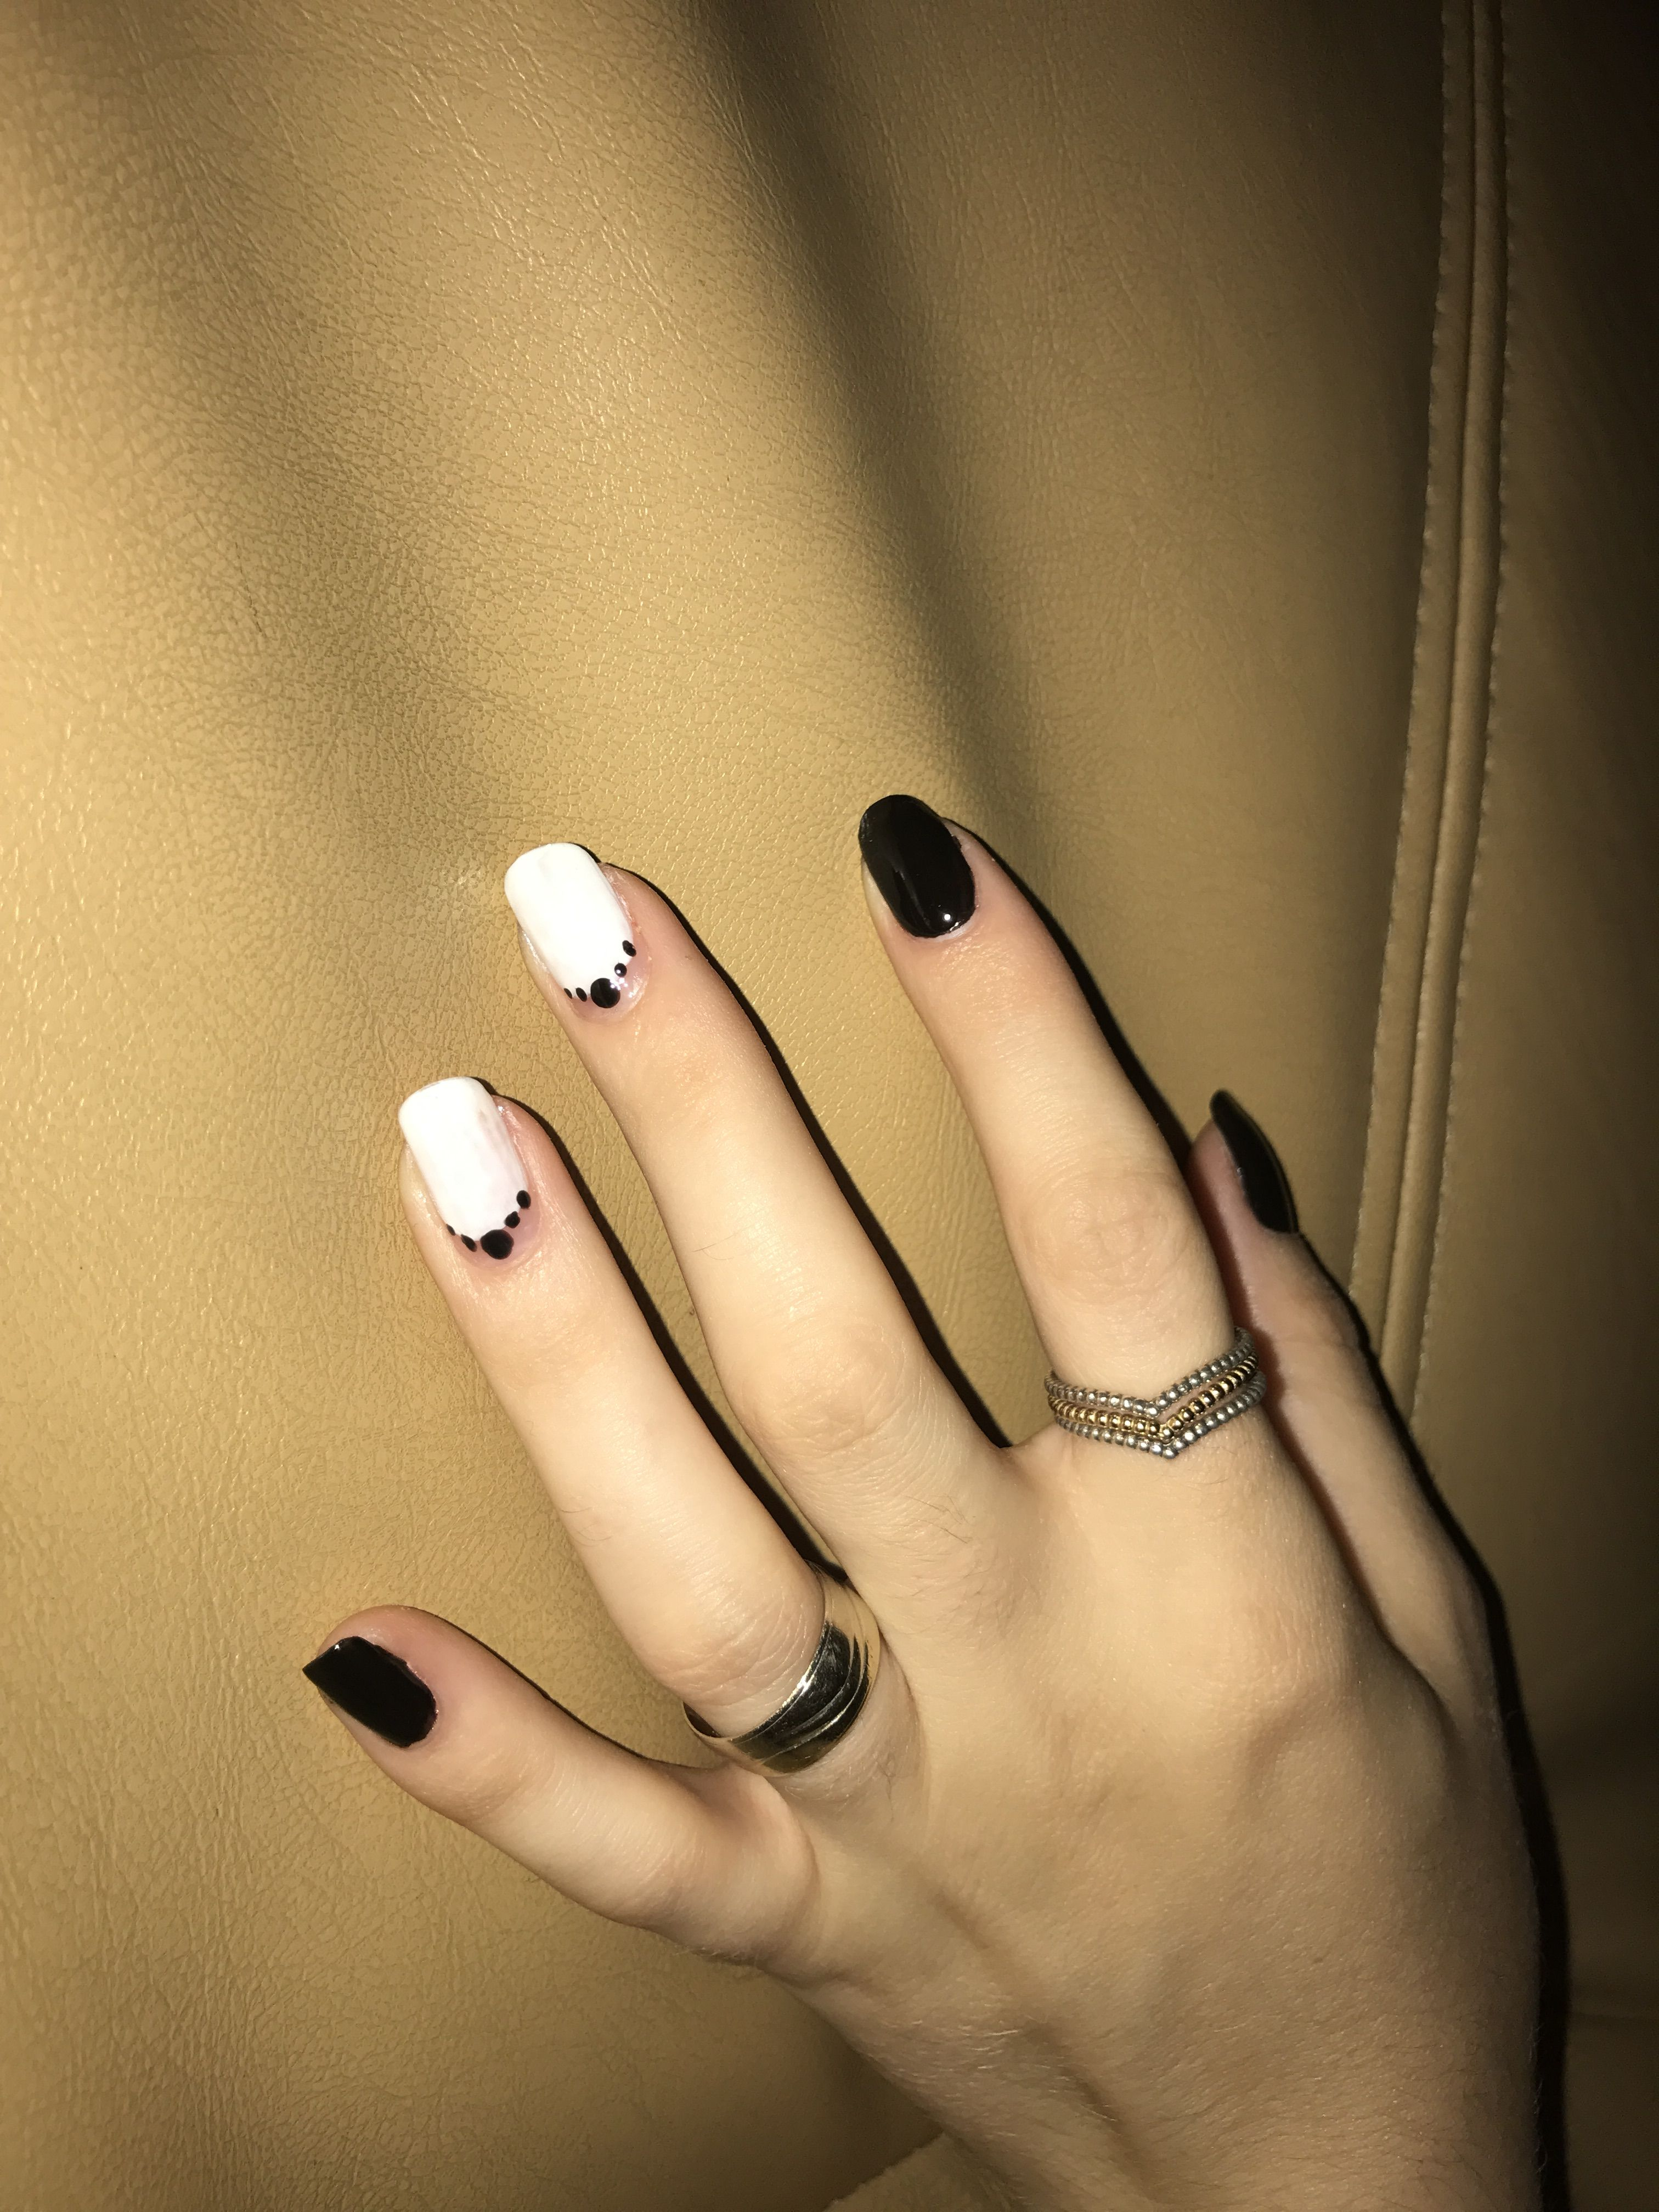 Black and white nails. 2018 trend | Nails, unghii | Pinterest ...